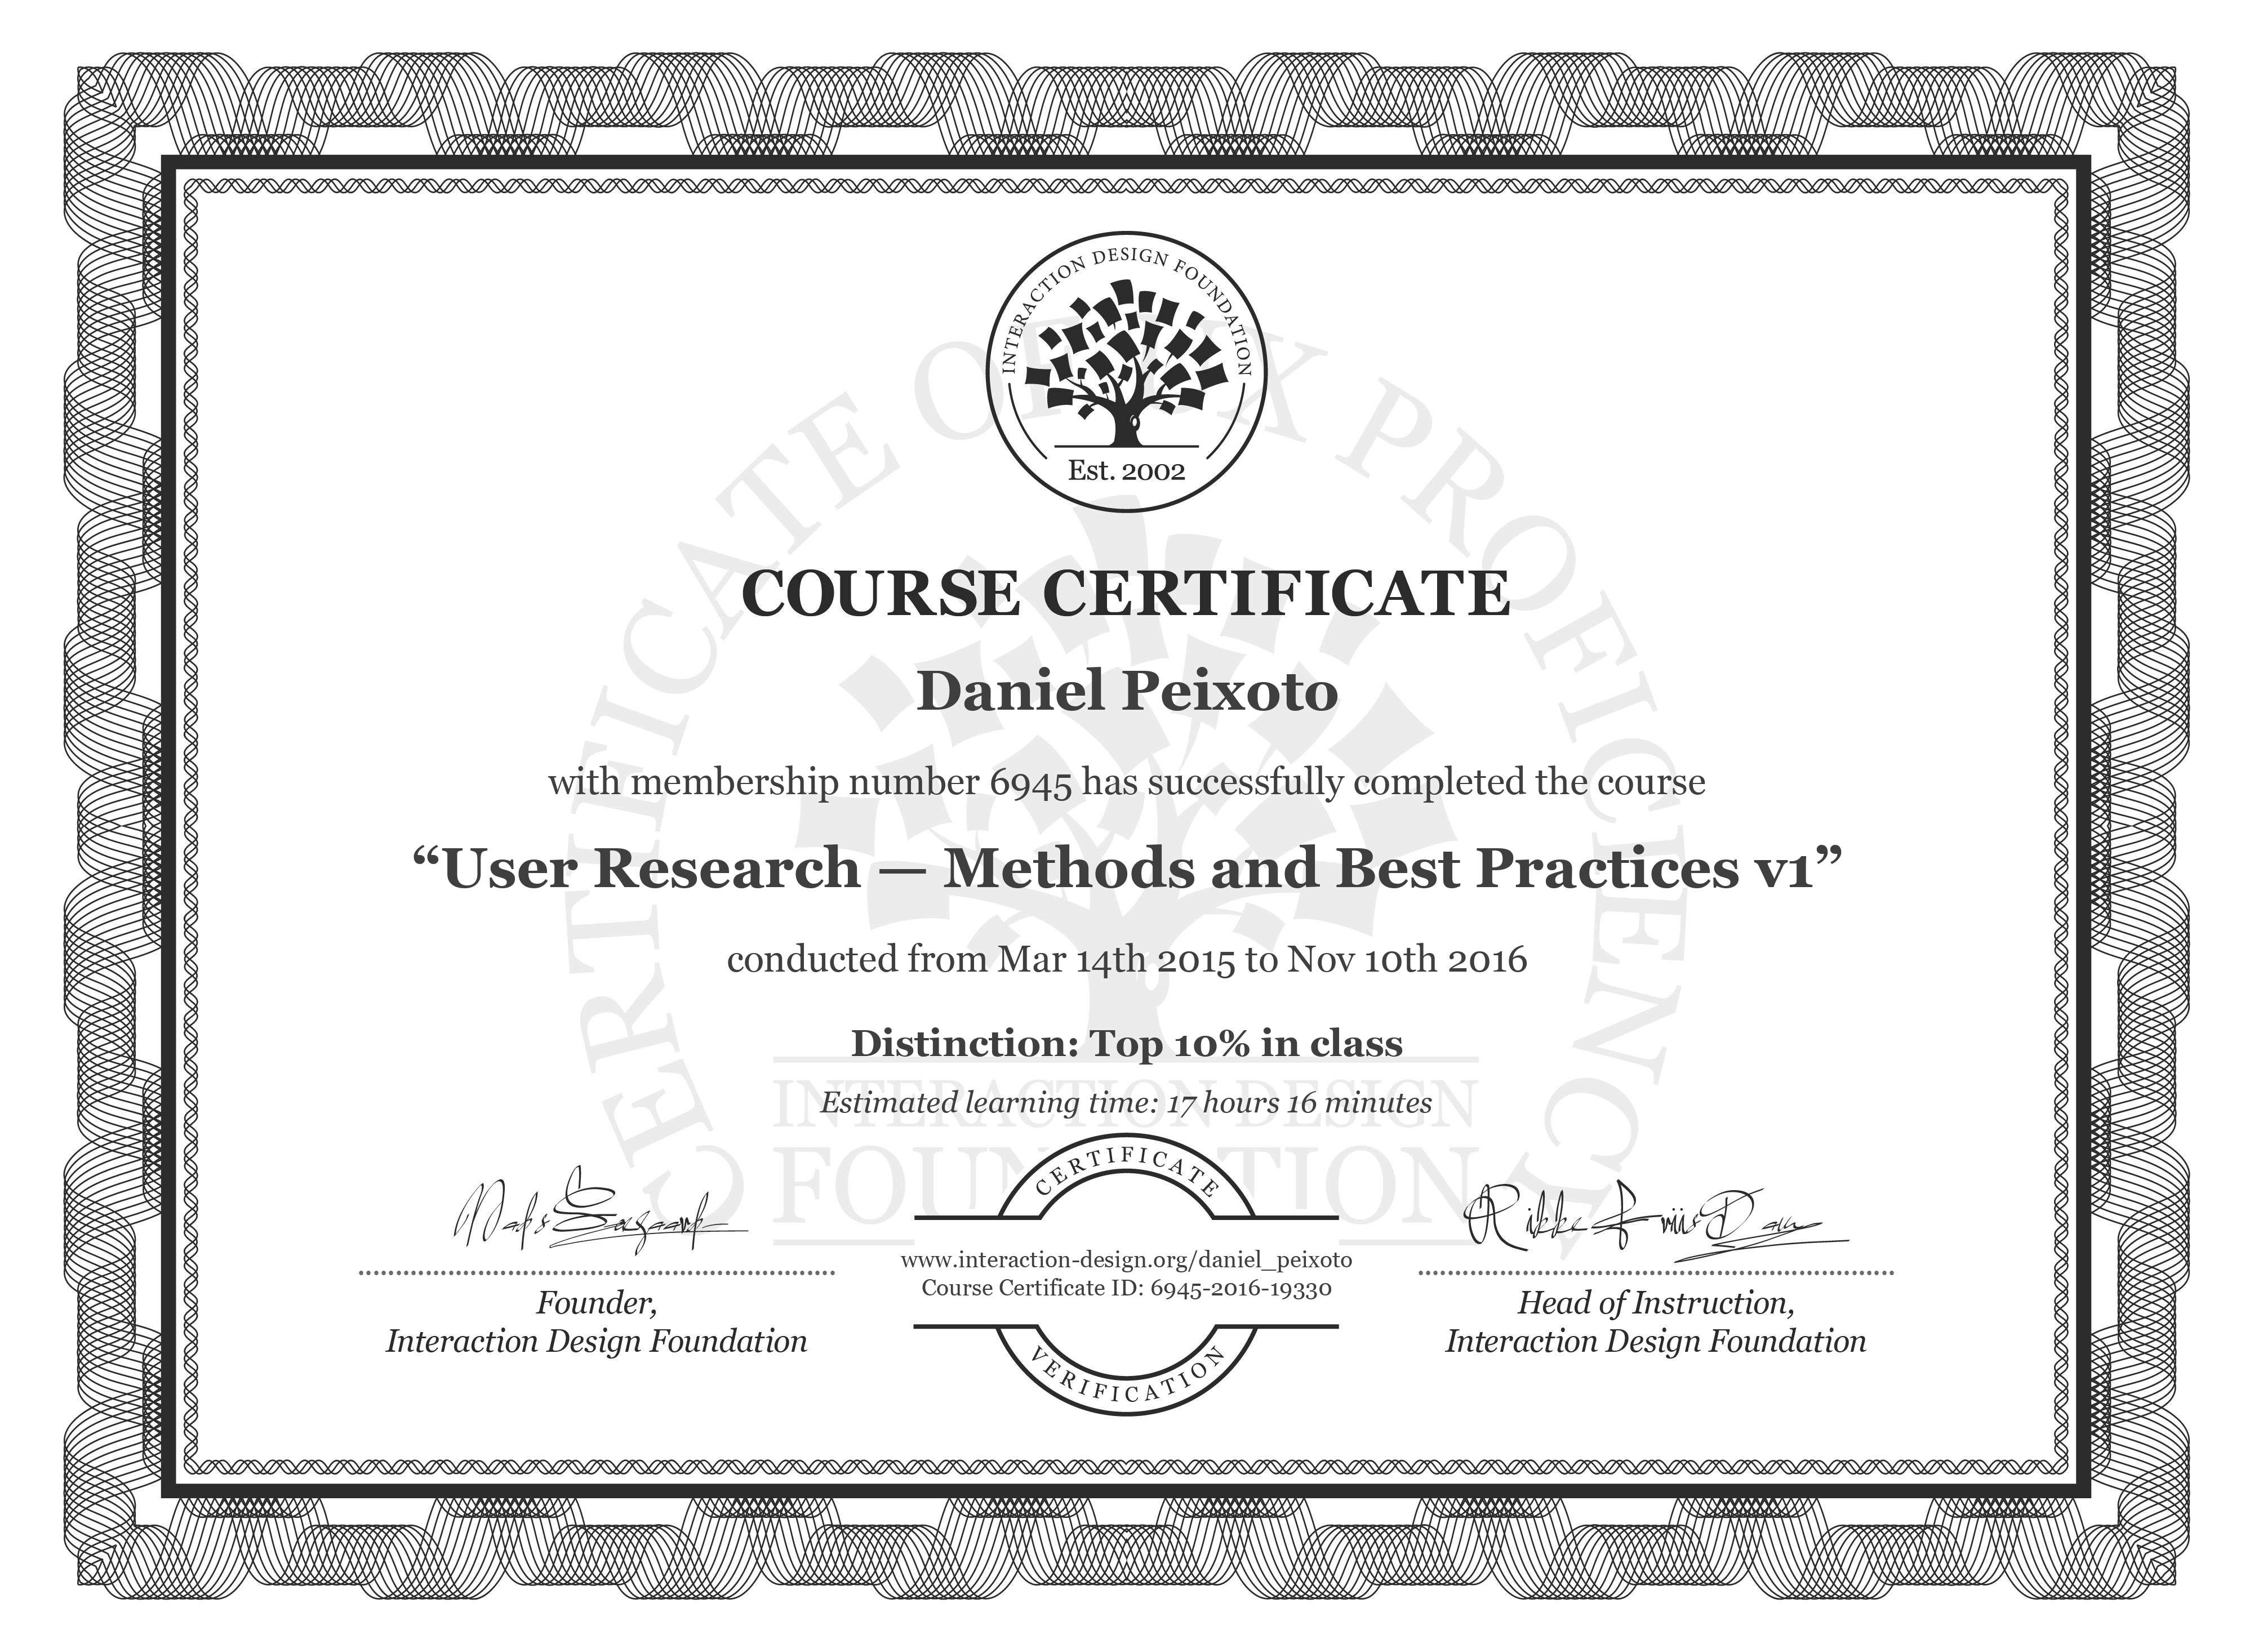 Daniel Peixoto: Course Certificate - User Research — Methods and Best Practices